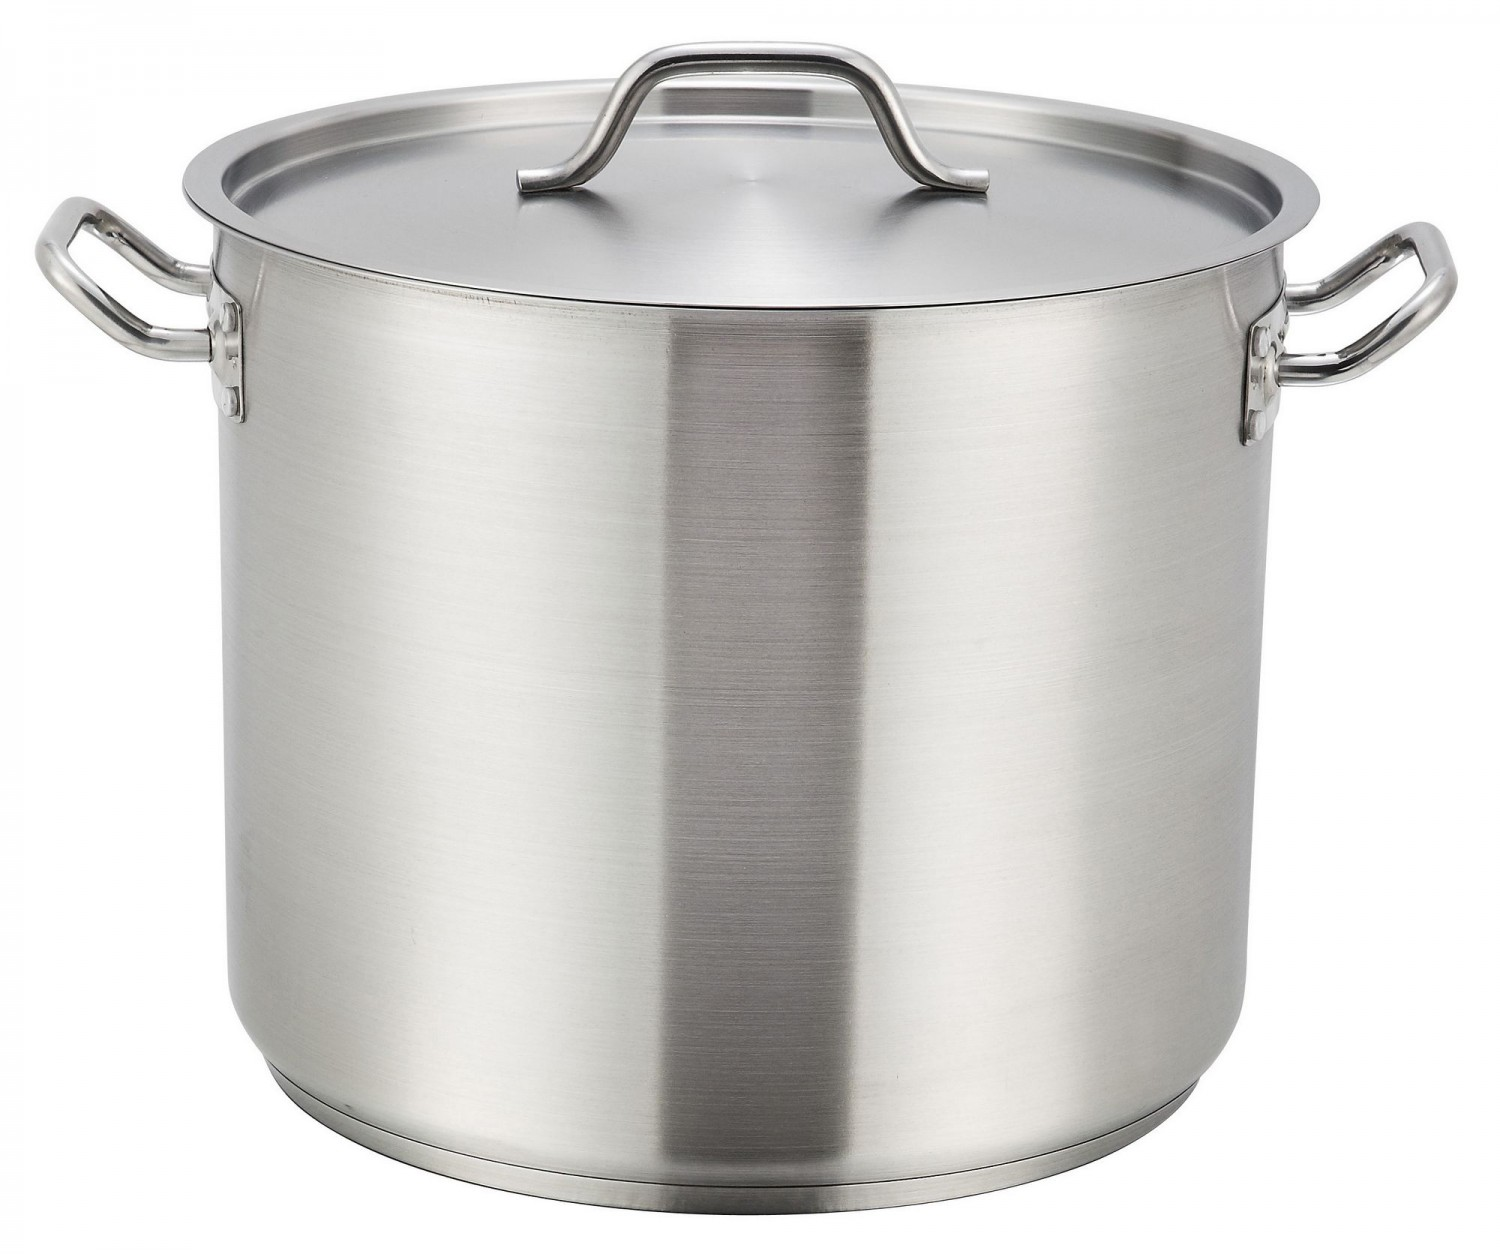 Winco SST-16 Premium Stainless Steel Stock Pot 16 Qt.